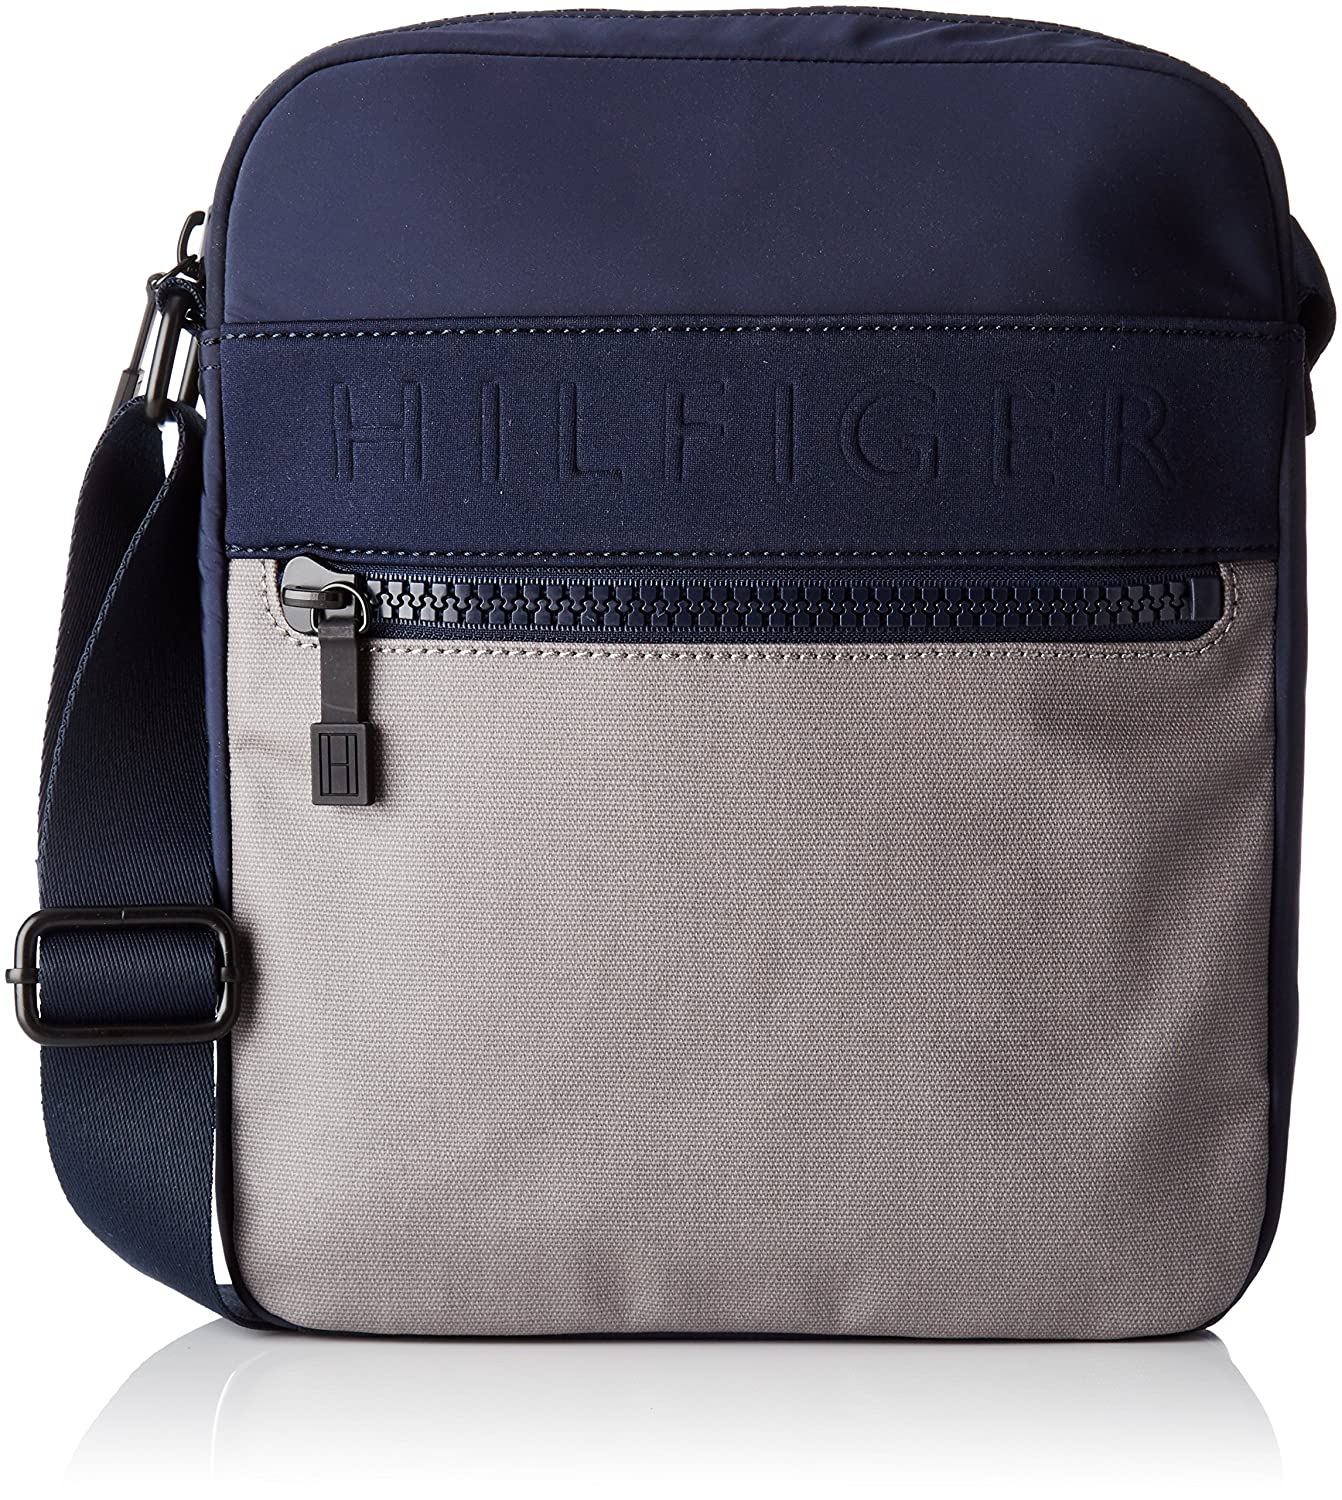 Tommy Hilfiger Am0am02077 Navy//Frost Grey Men/'s Messenger Bag WxHxL 14x29x37 cm Multicolor